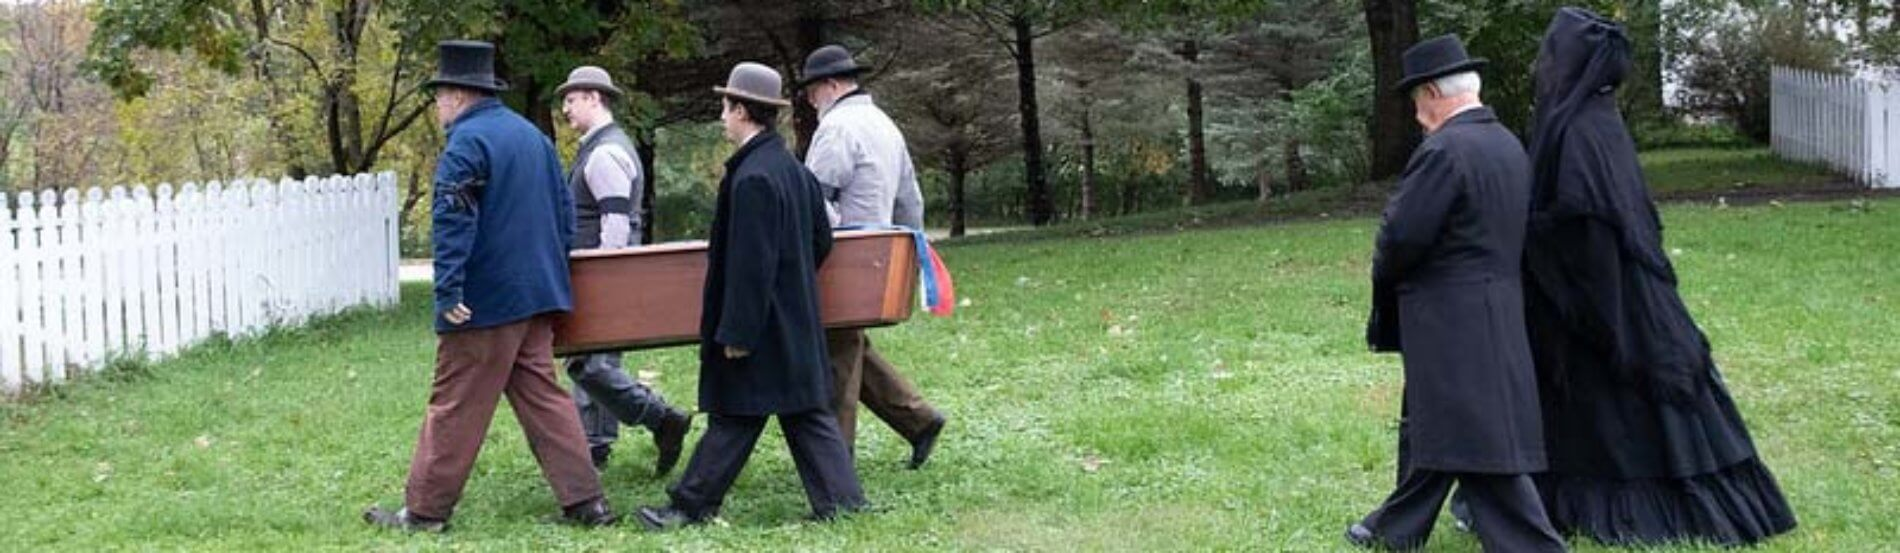 victorian funeral procession